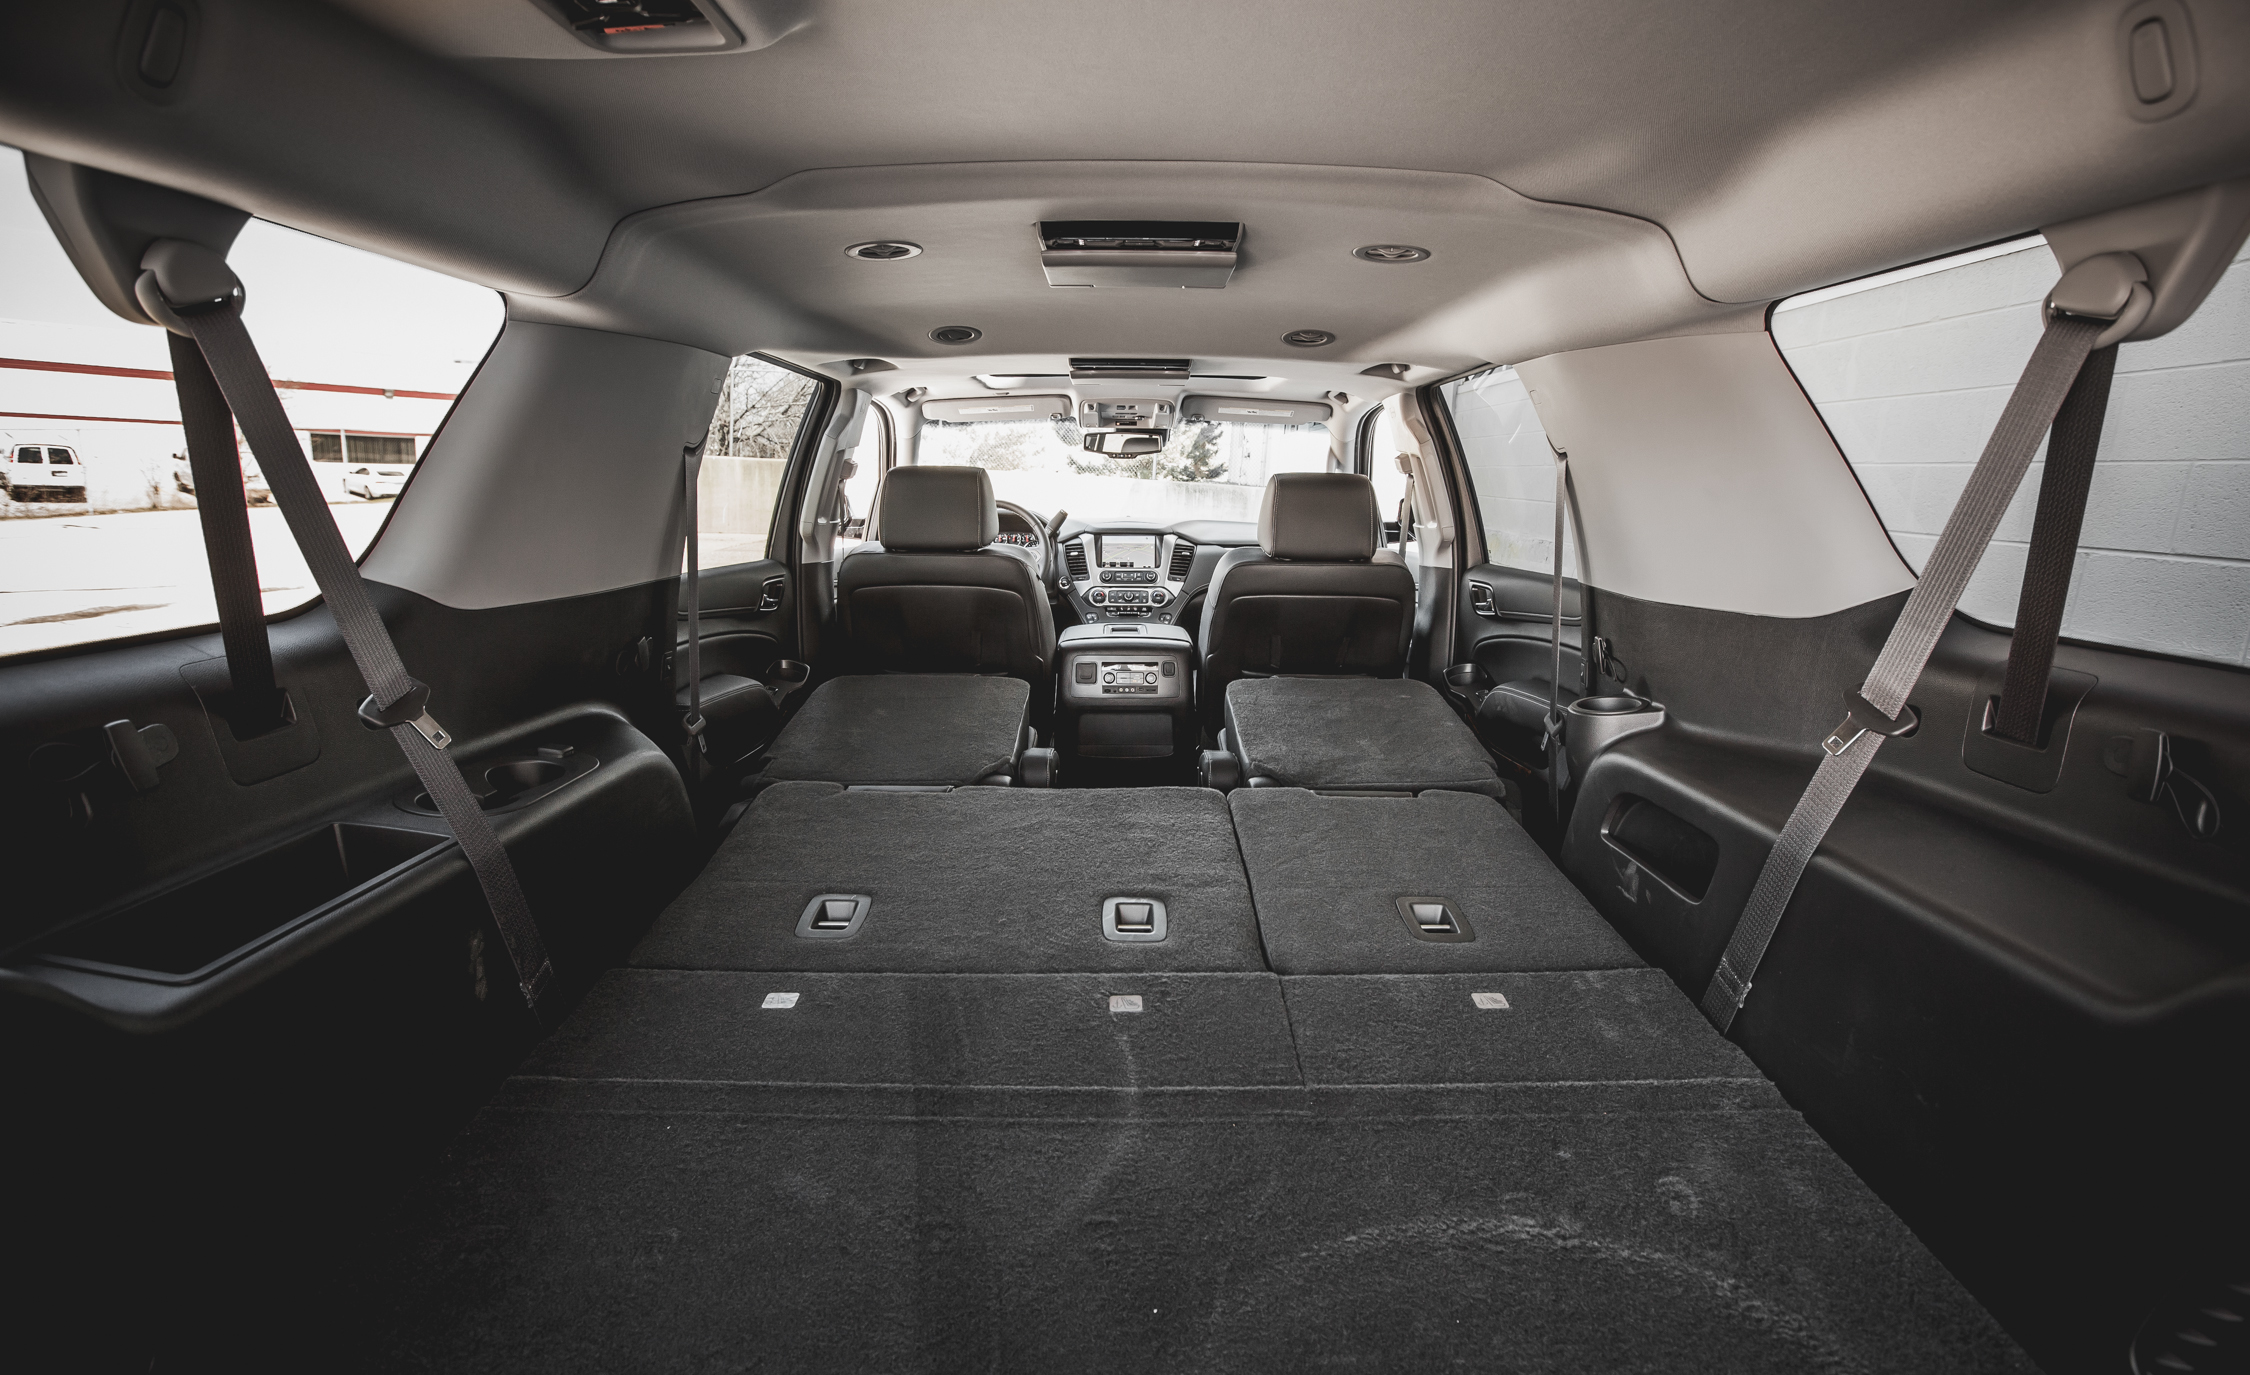 2015 Chevrolet Suburban Ltz Interior Cargo 8840 Cars Performance Reviews And Test Drive